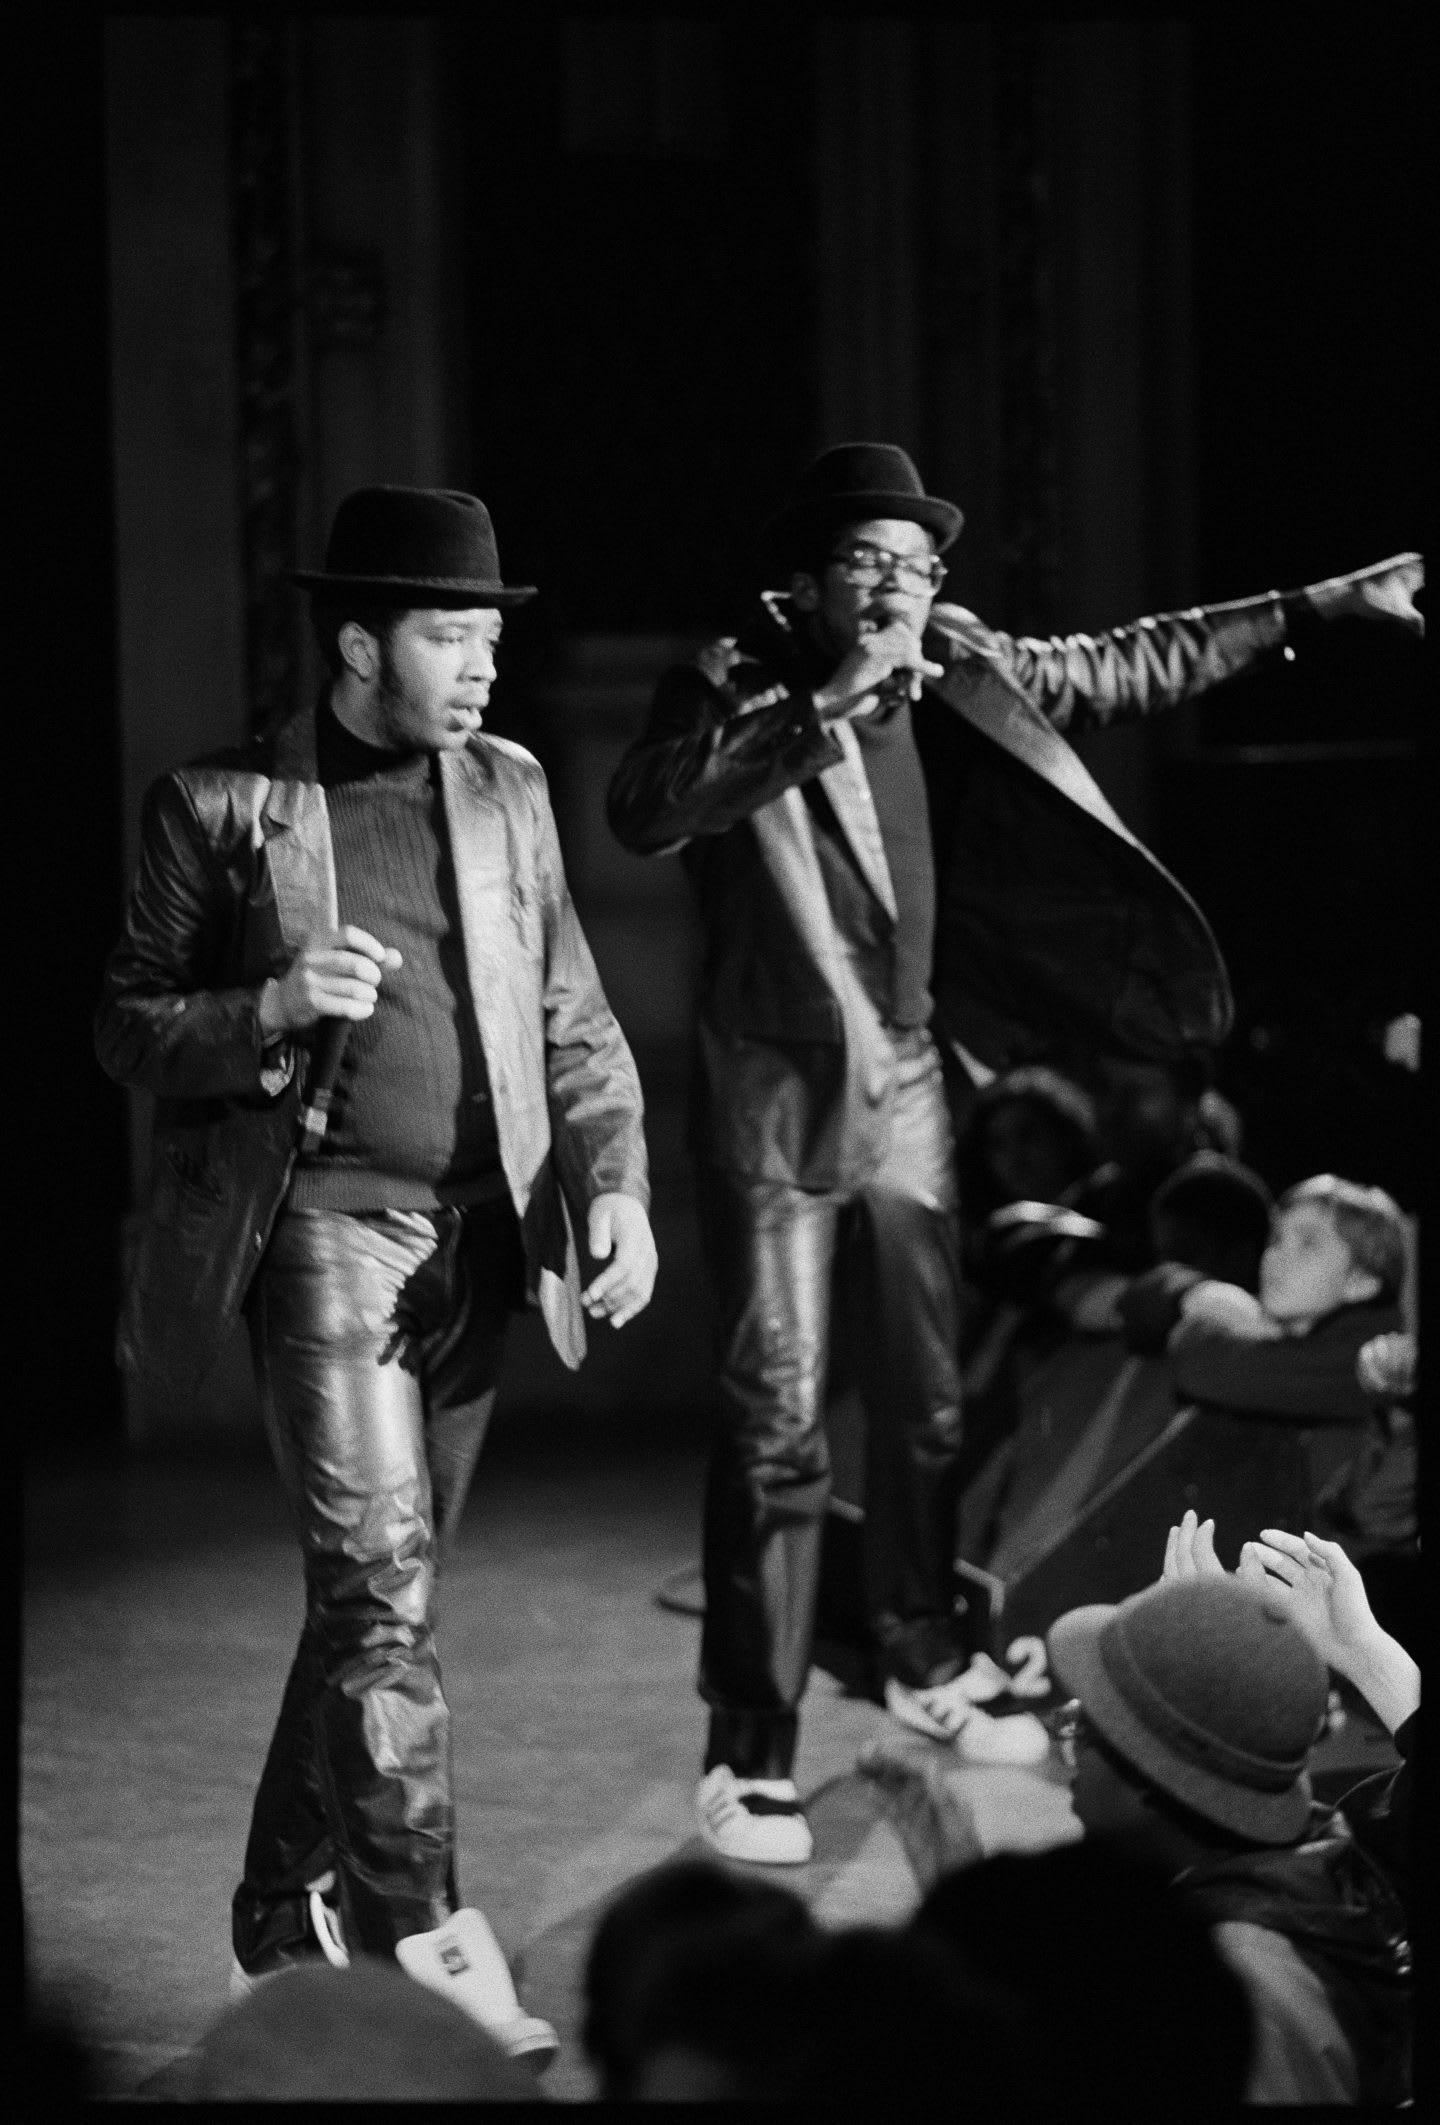 Run DMC perform on stage wearing their superstars. The image is black and white and the performers are facing the crowd with arms in the air.